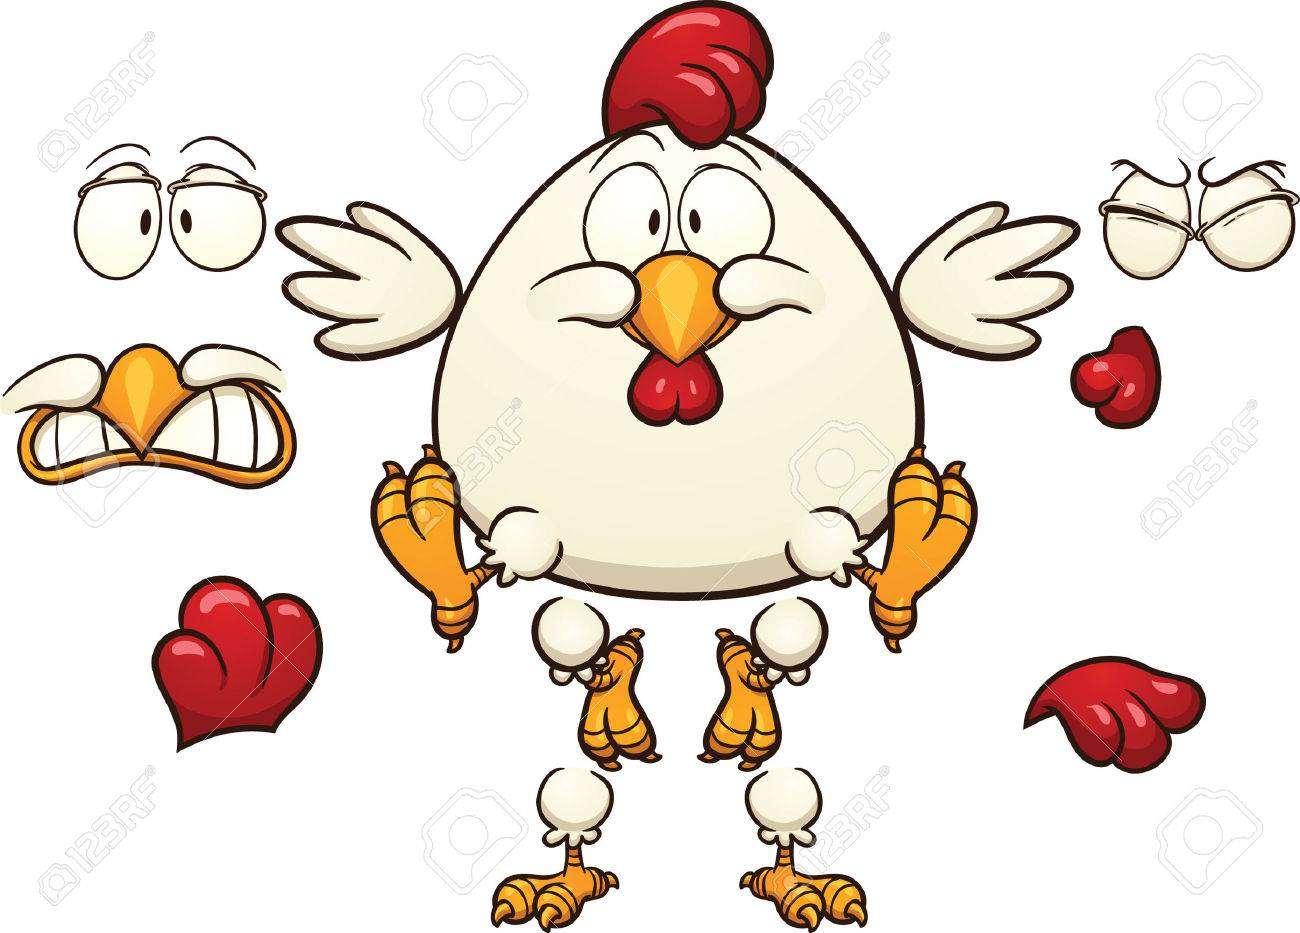 animation chicken images u0026 stock pictures royalty free animation